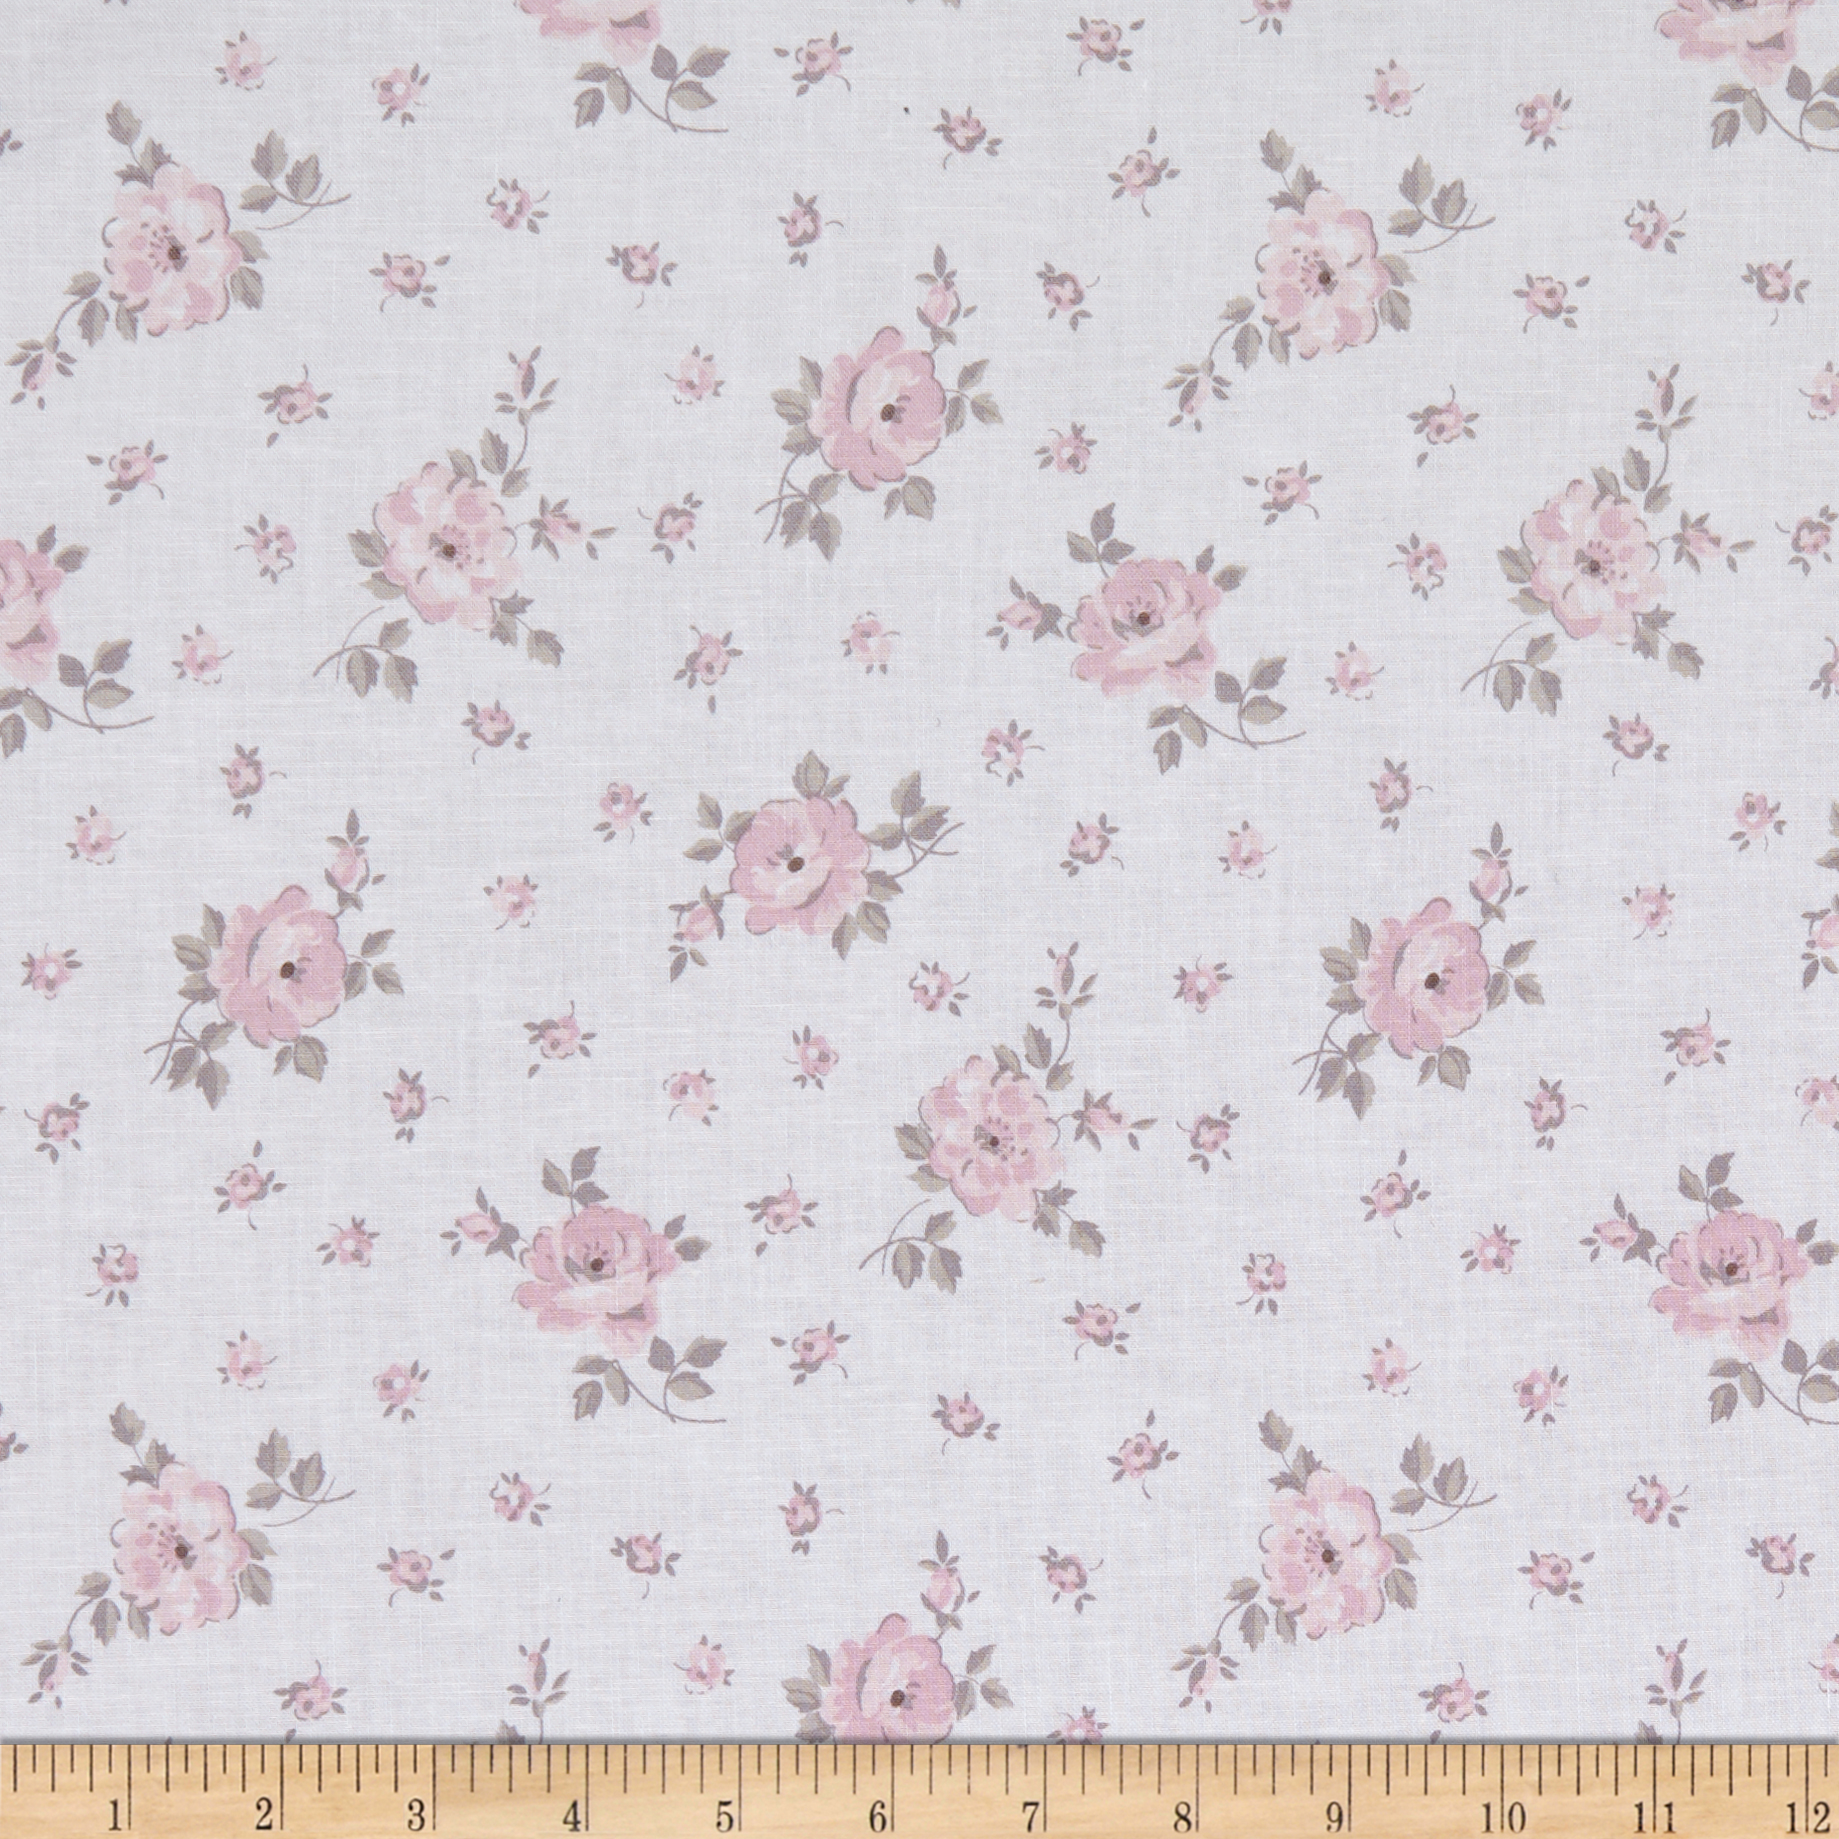 INOpets.com Anything for Pets Parents & Their Pets Penny Rose Rose Garden Garden Cream Fabric